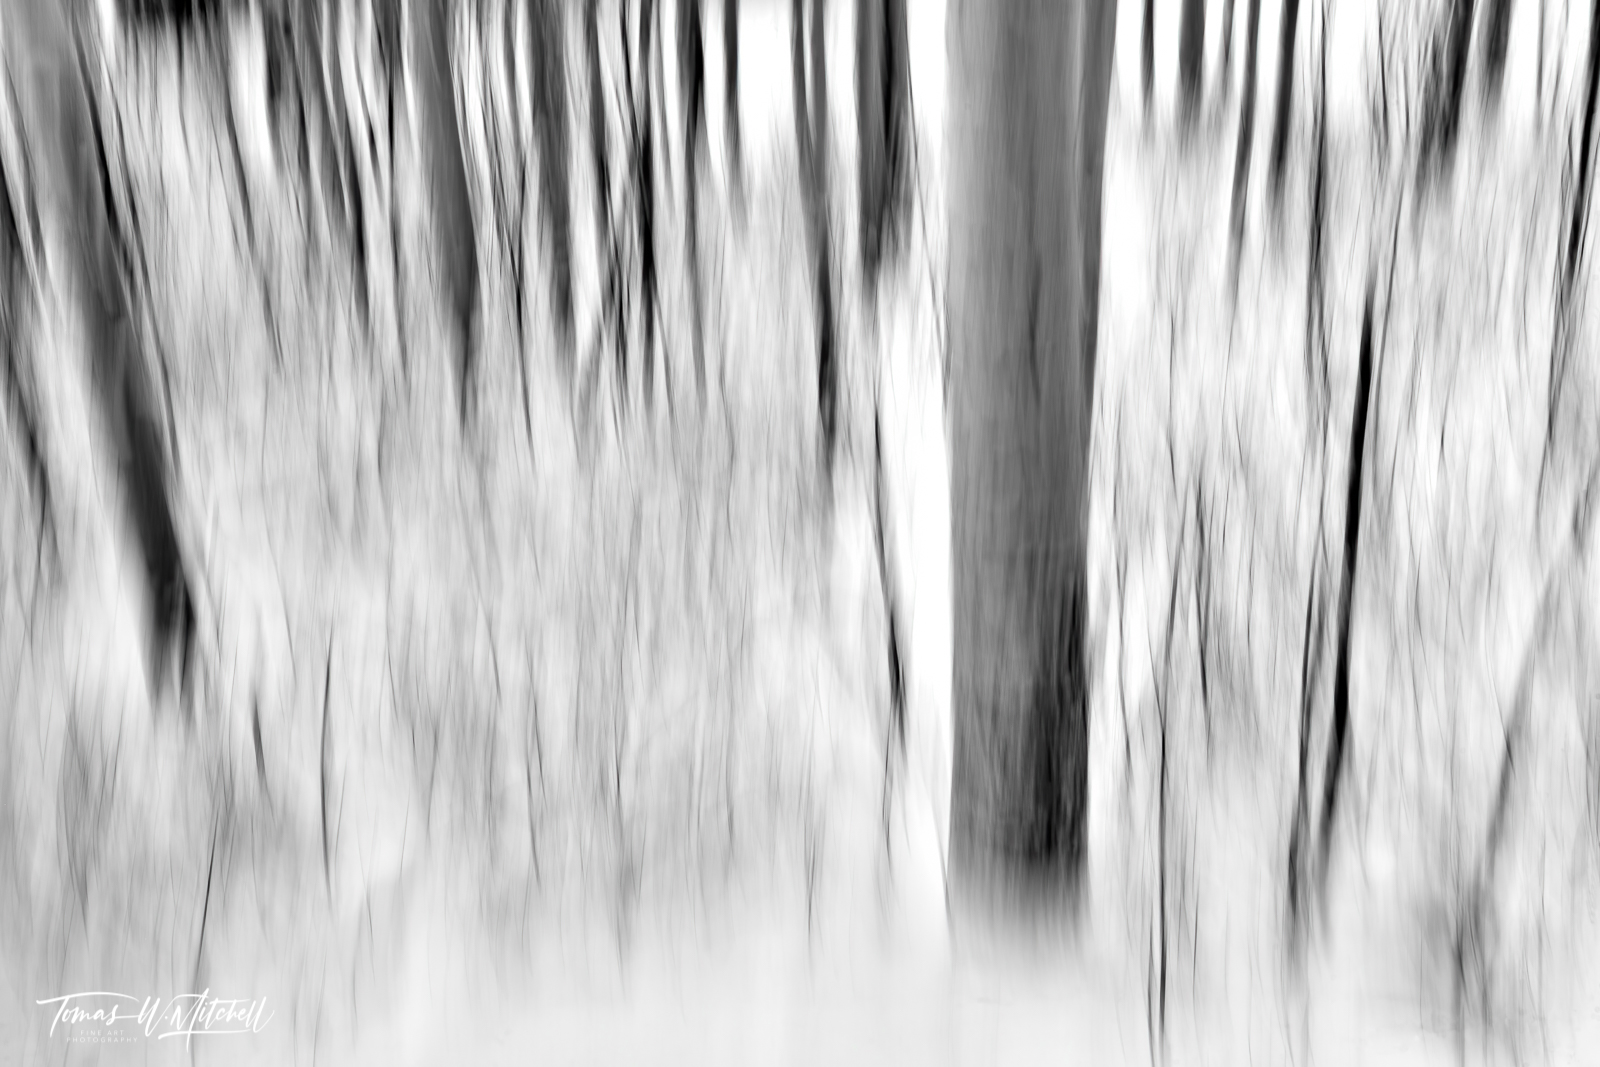 UINTA-WASATCH-CACHE NATIONAL FOREST, UTAH, limited edition, fine art, prints, snowstorm, winter, aspen trees, snowflakes, abstract, photograph, black and white, photo